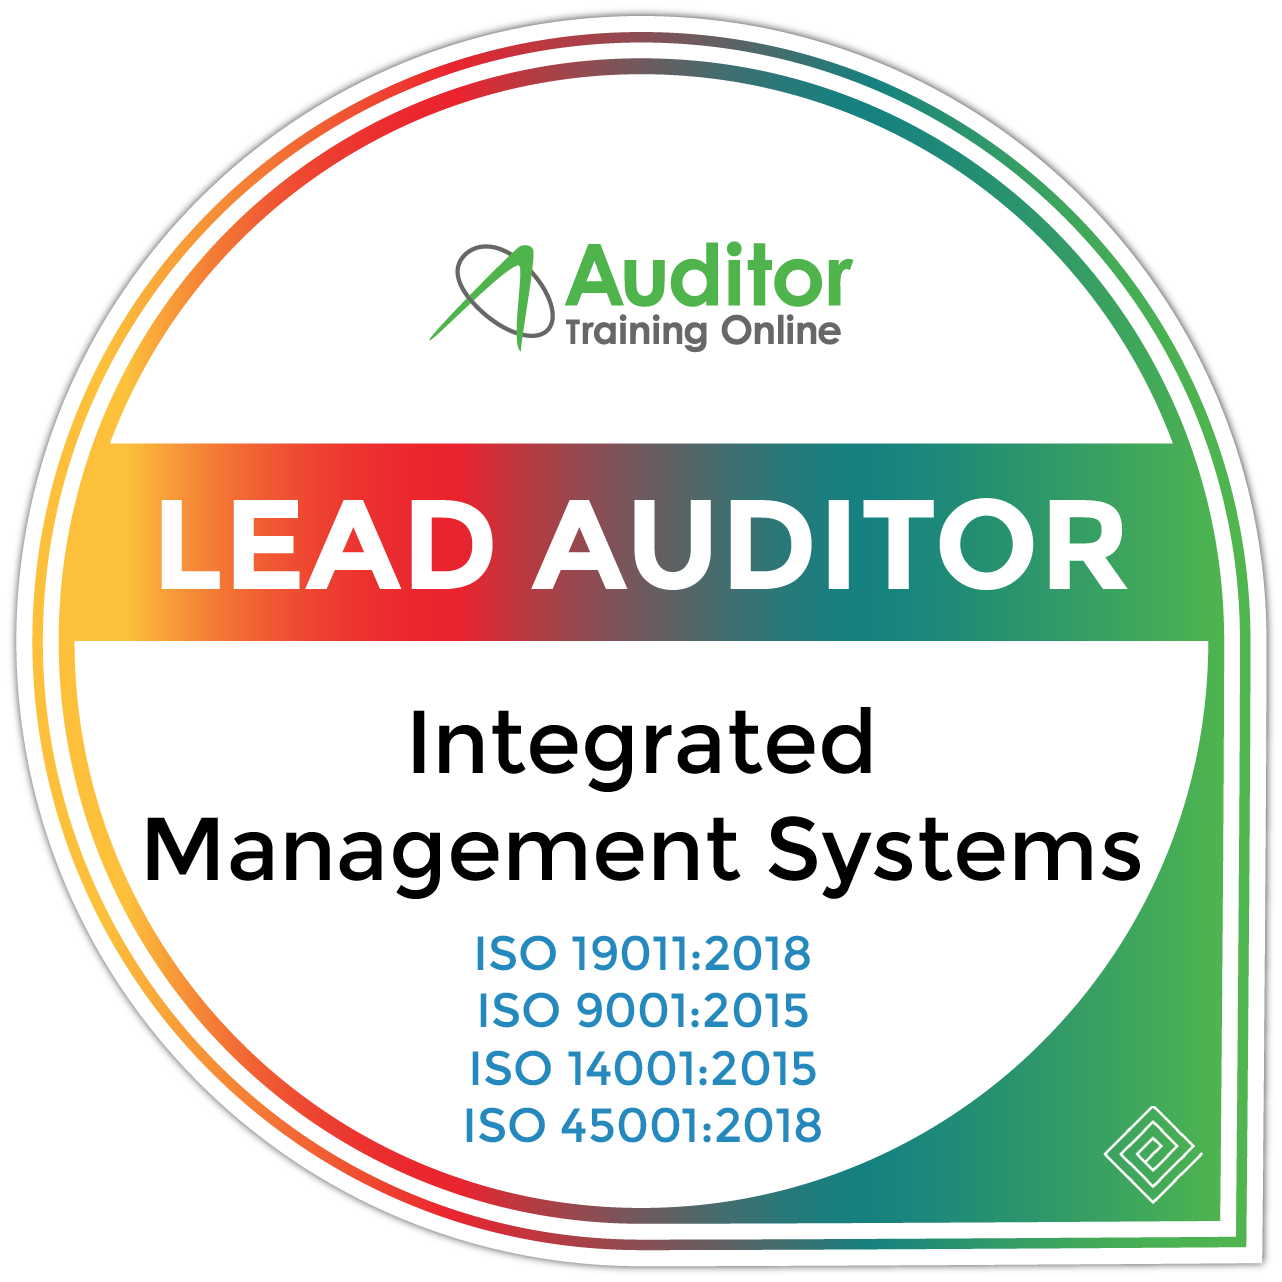 Lead Auditor Integrated Management Systems